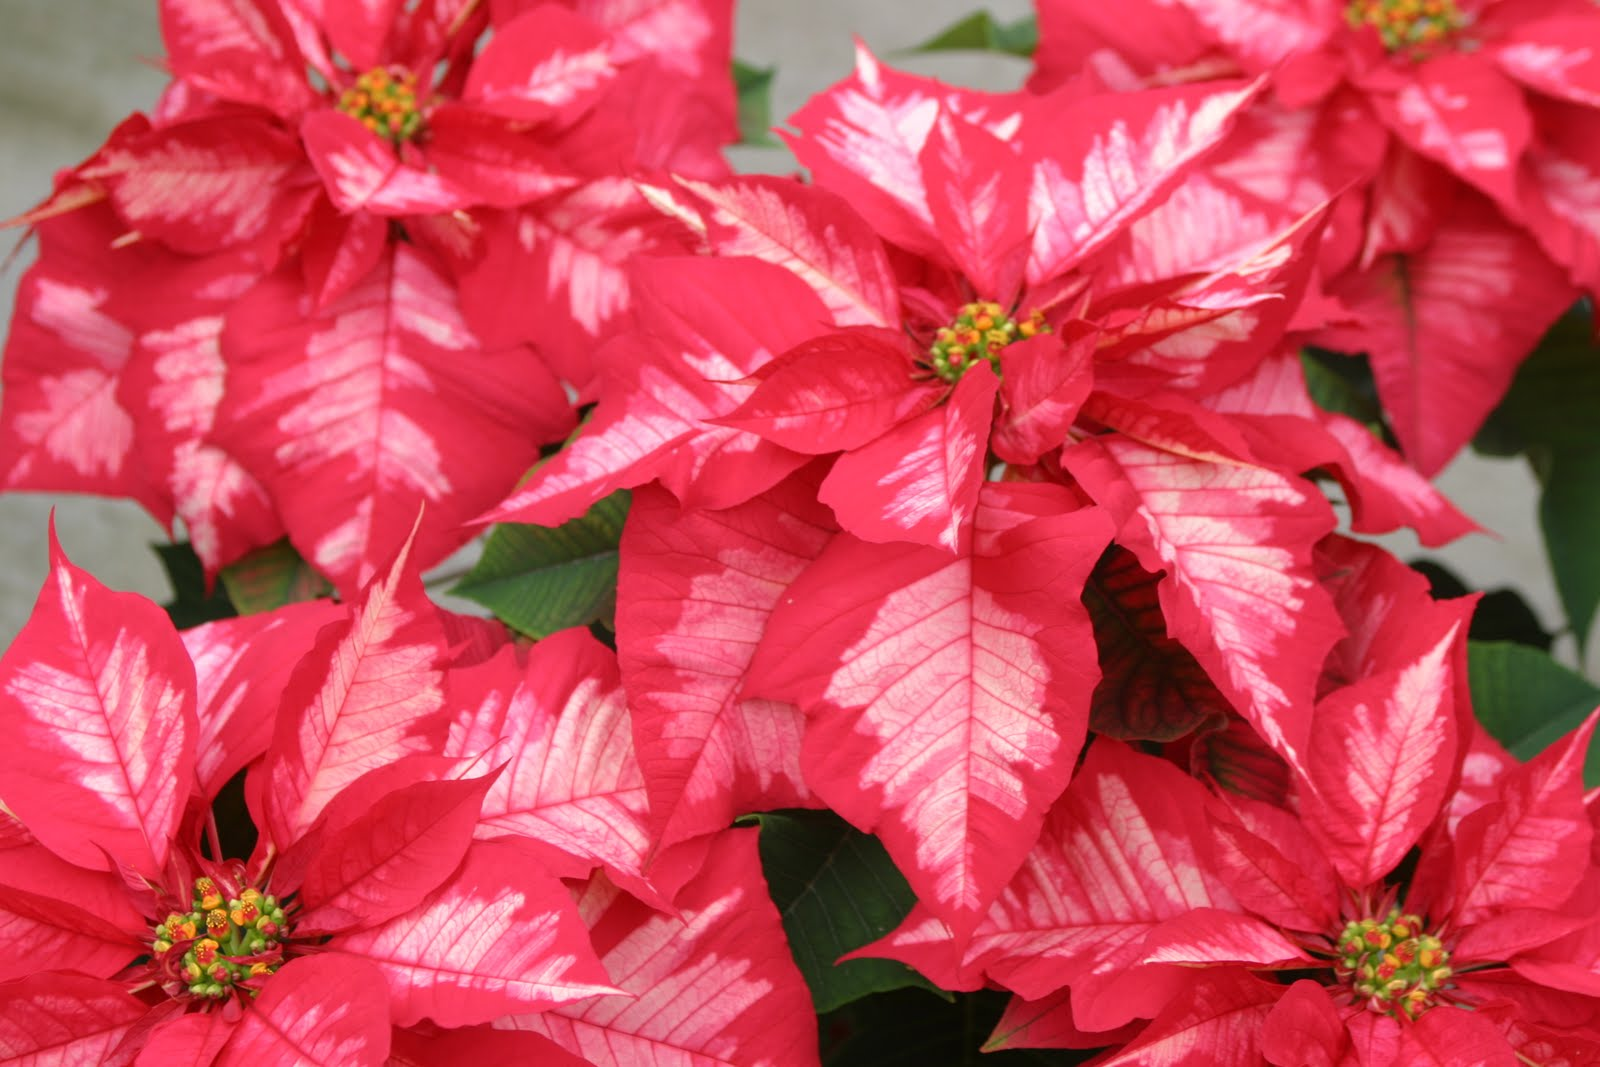 Lastly, Poinsettia 'Ice Punch' still receives the most comments of th...